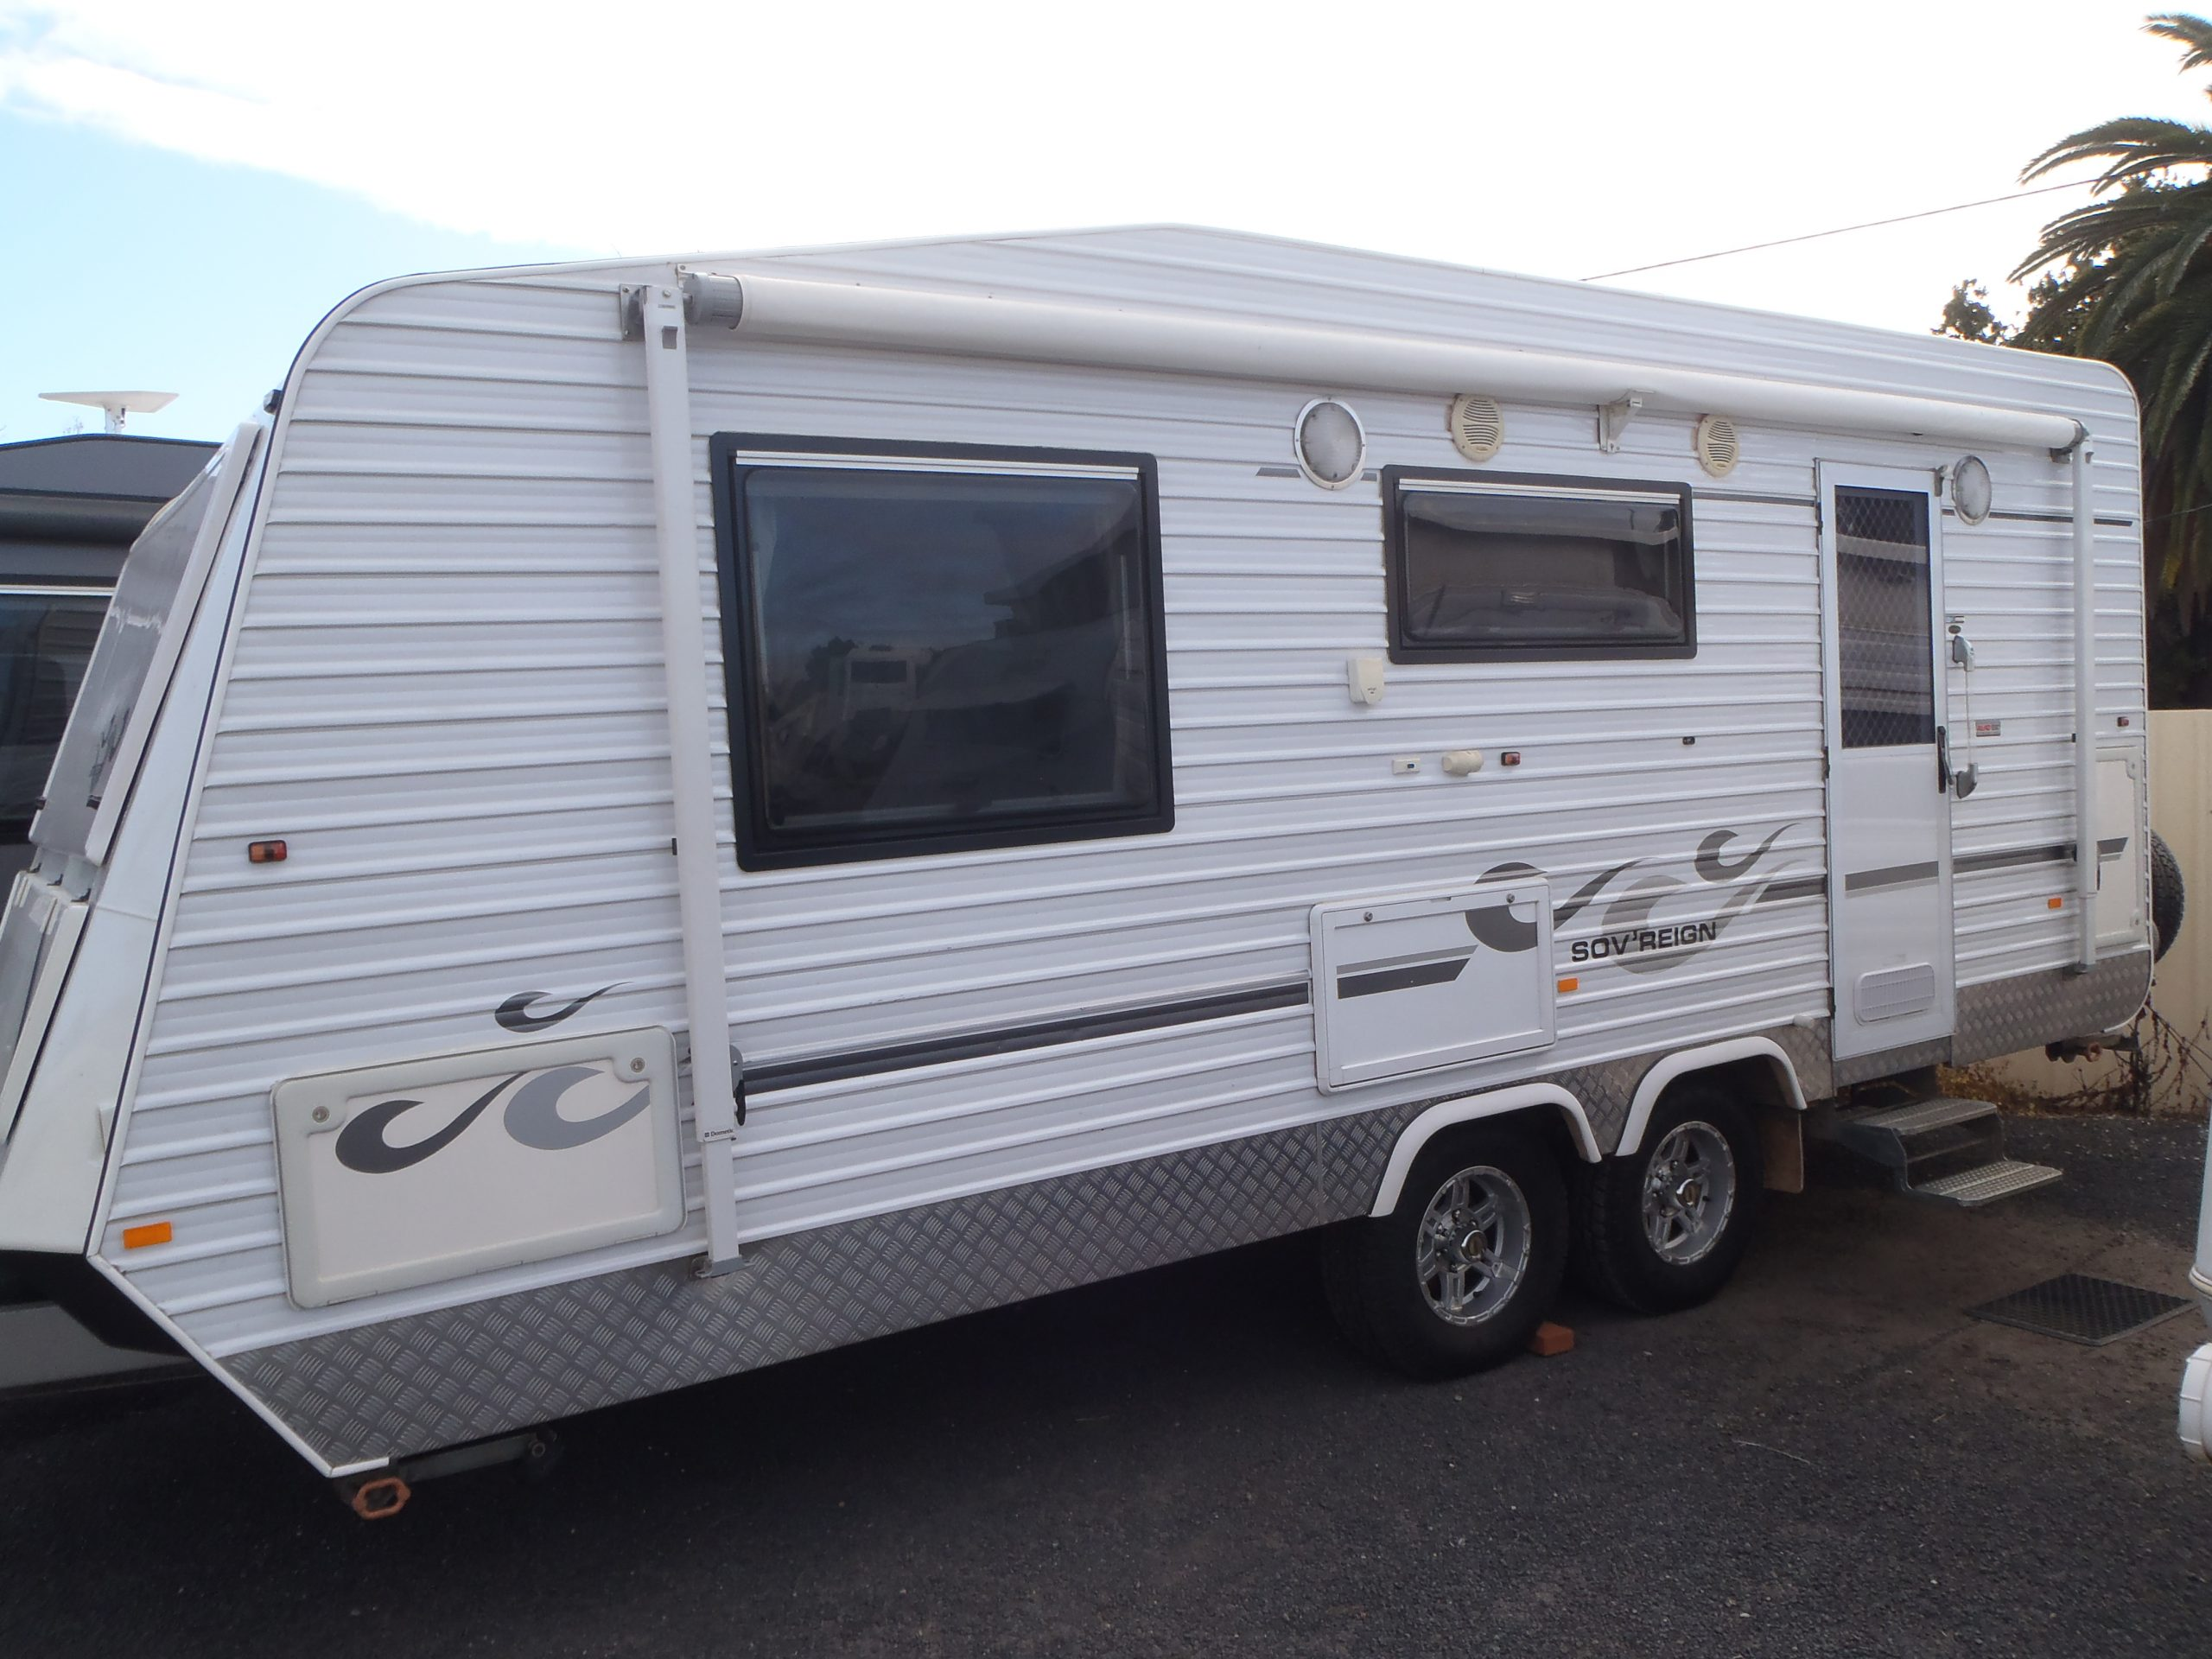 2013 Roma Sovereign 20'6 for sale in Windsor, NSW. SN 3035